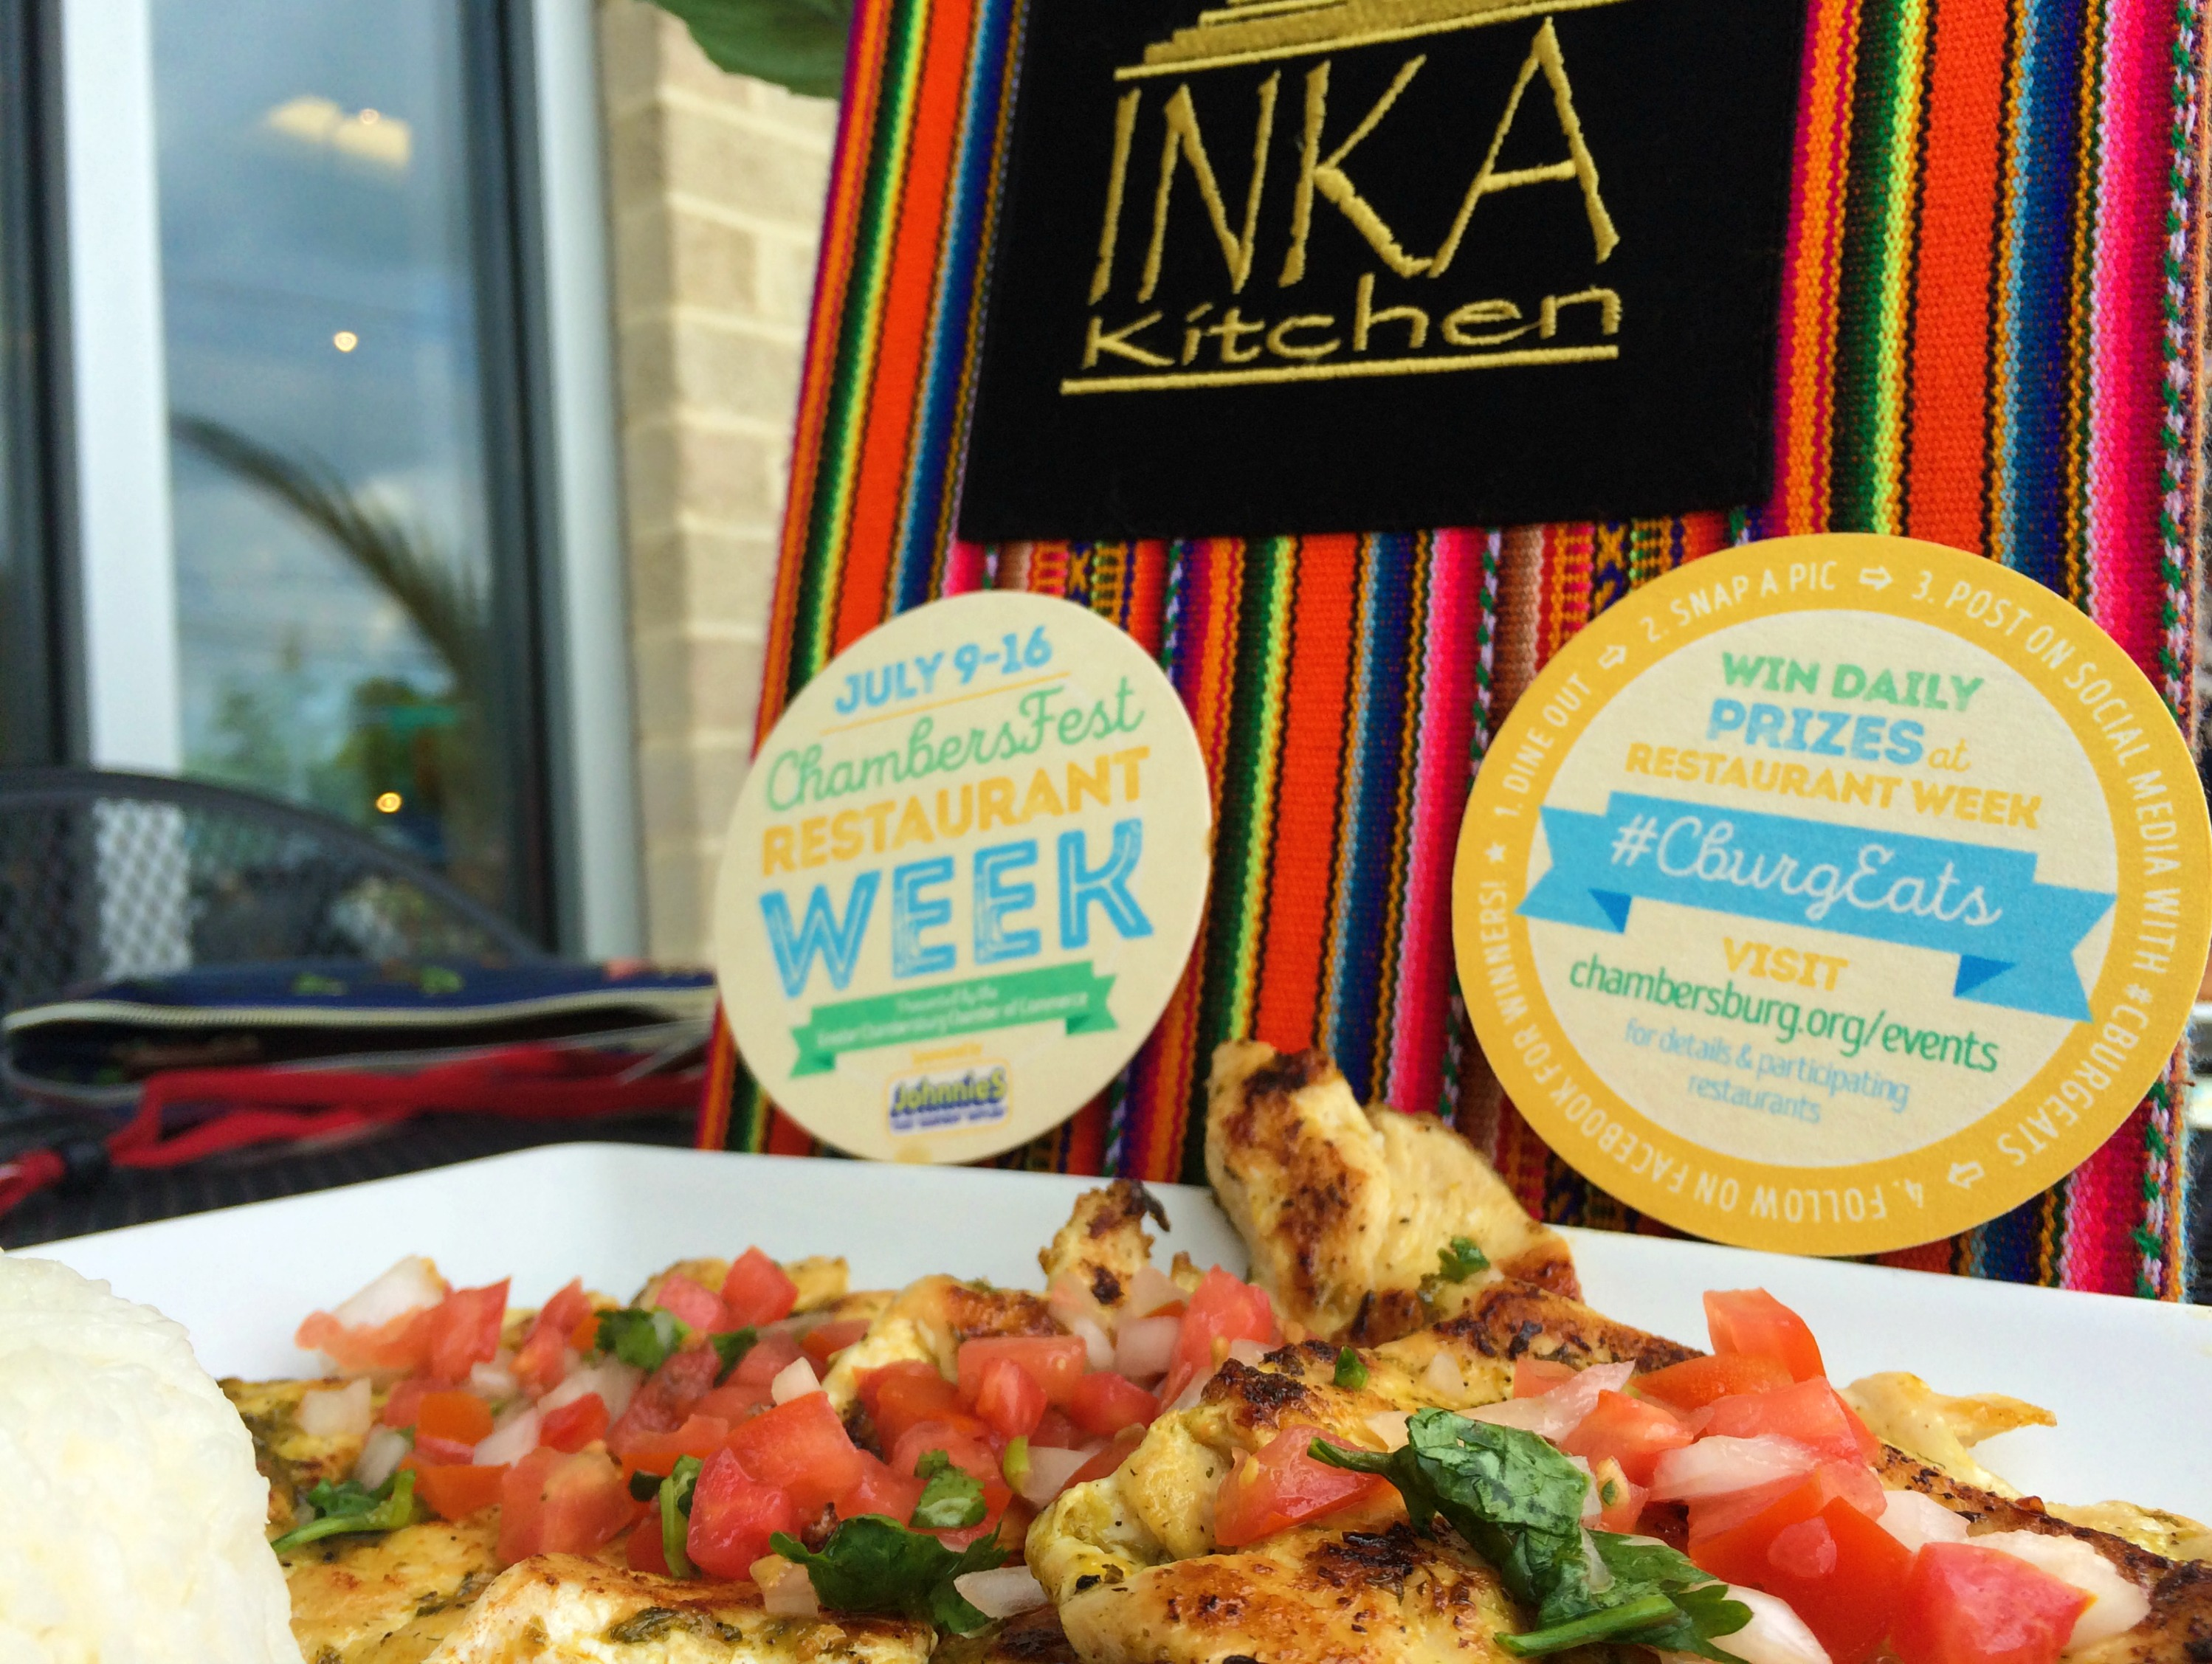 inka kitchen